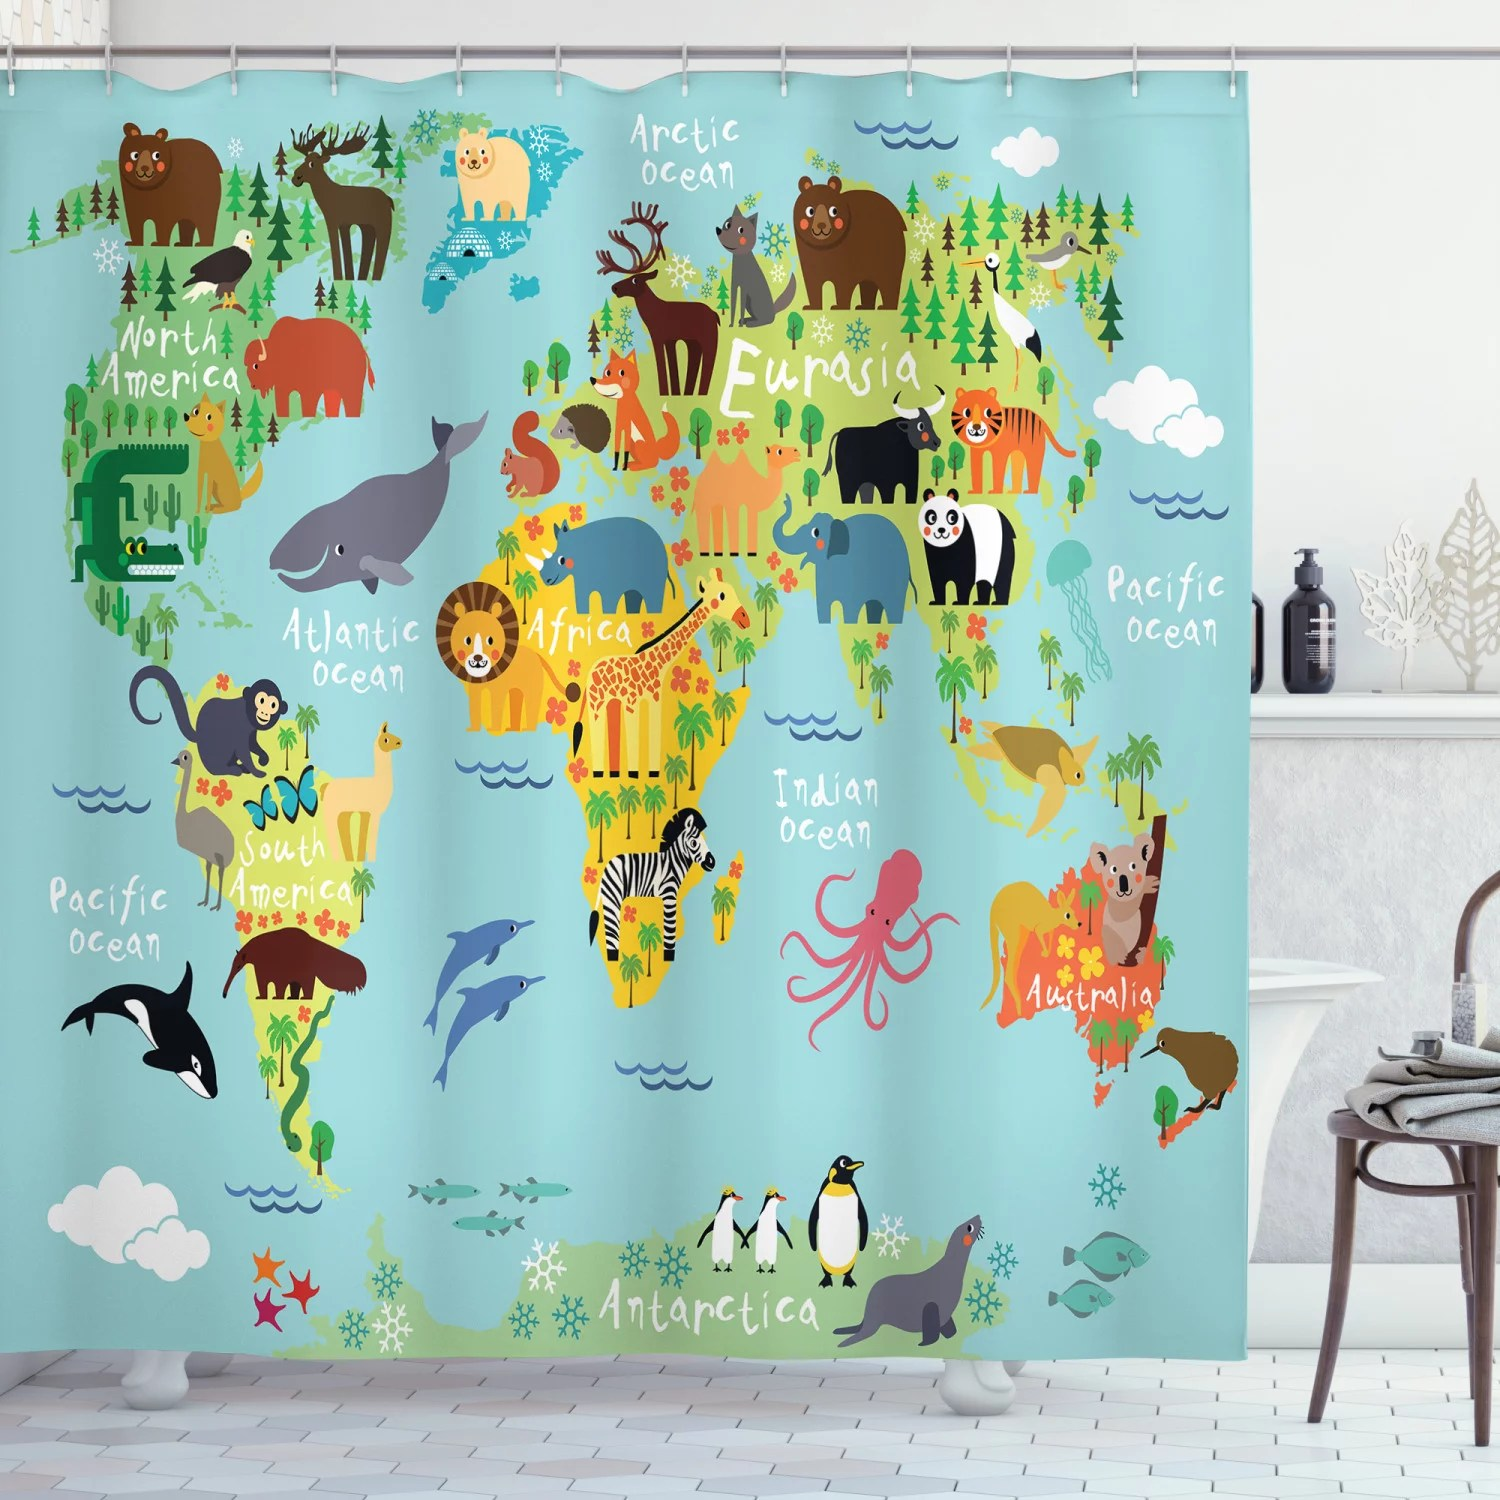 wanderlust decor shower curtain set animal map of the world for children and kids cartoon mountains forests bathroom accessories 69w x 70l inches